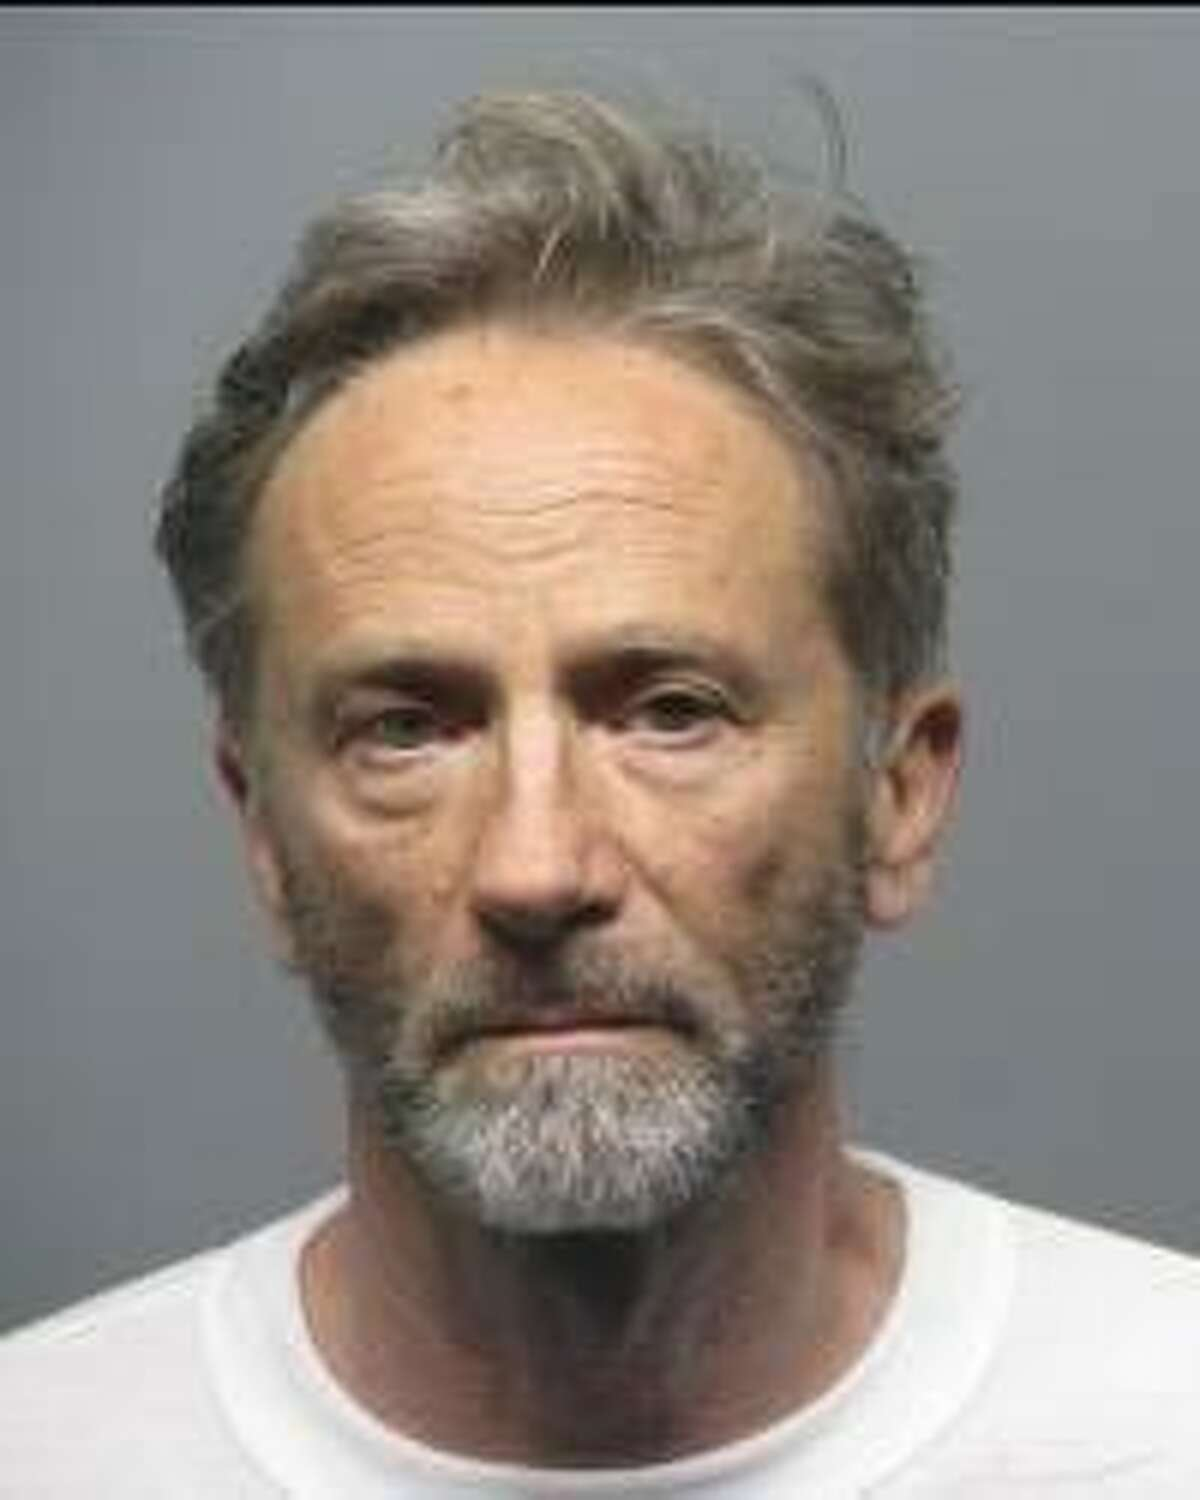 Jacques Bloxham was arrested Sunday after police said he tried to use a shoe camera to record up a girl's dress at the Walnut Creek Apple store.